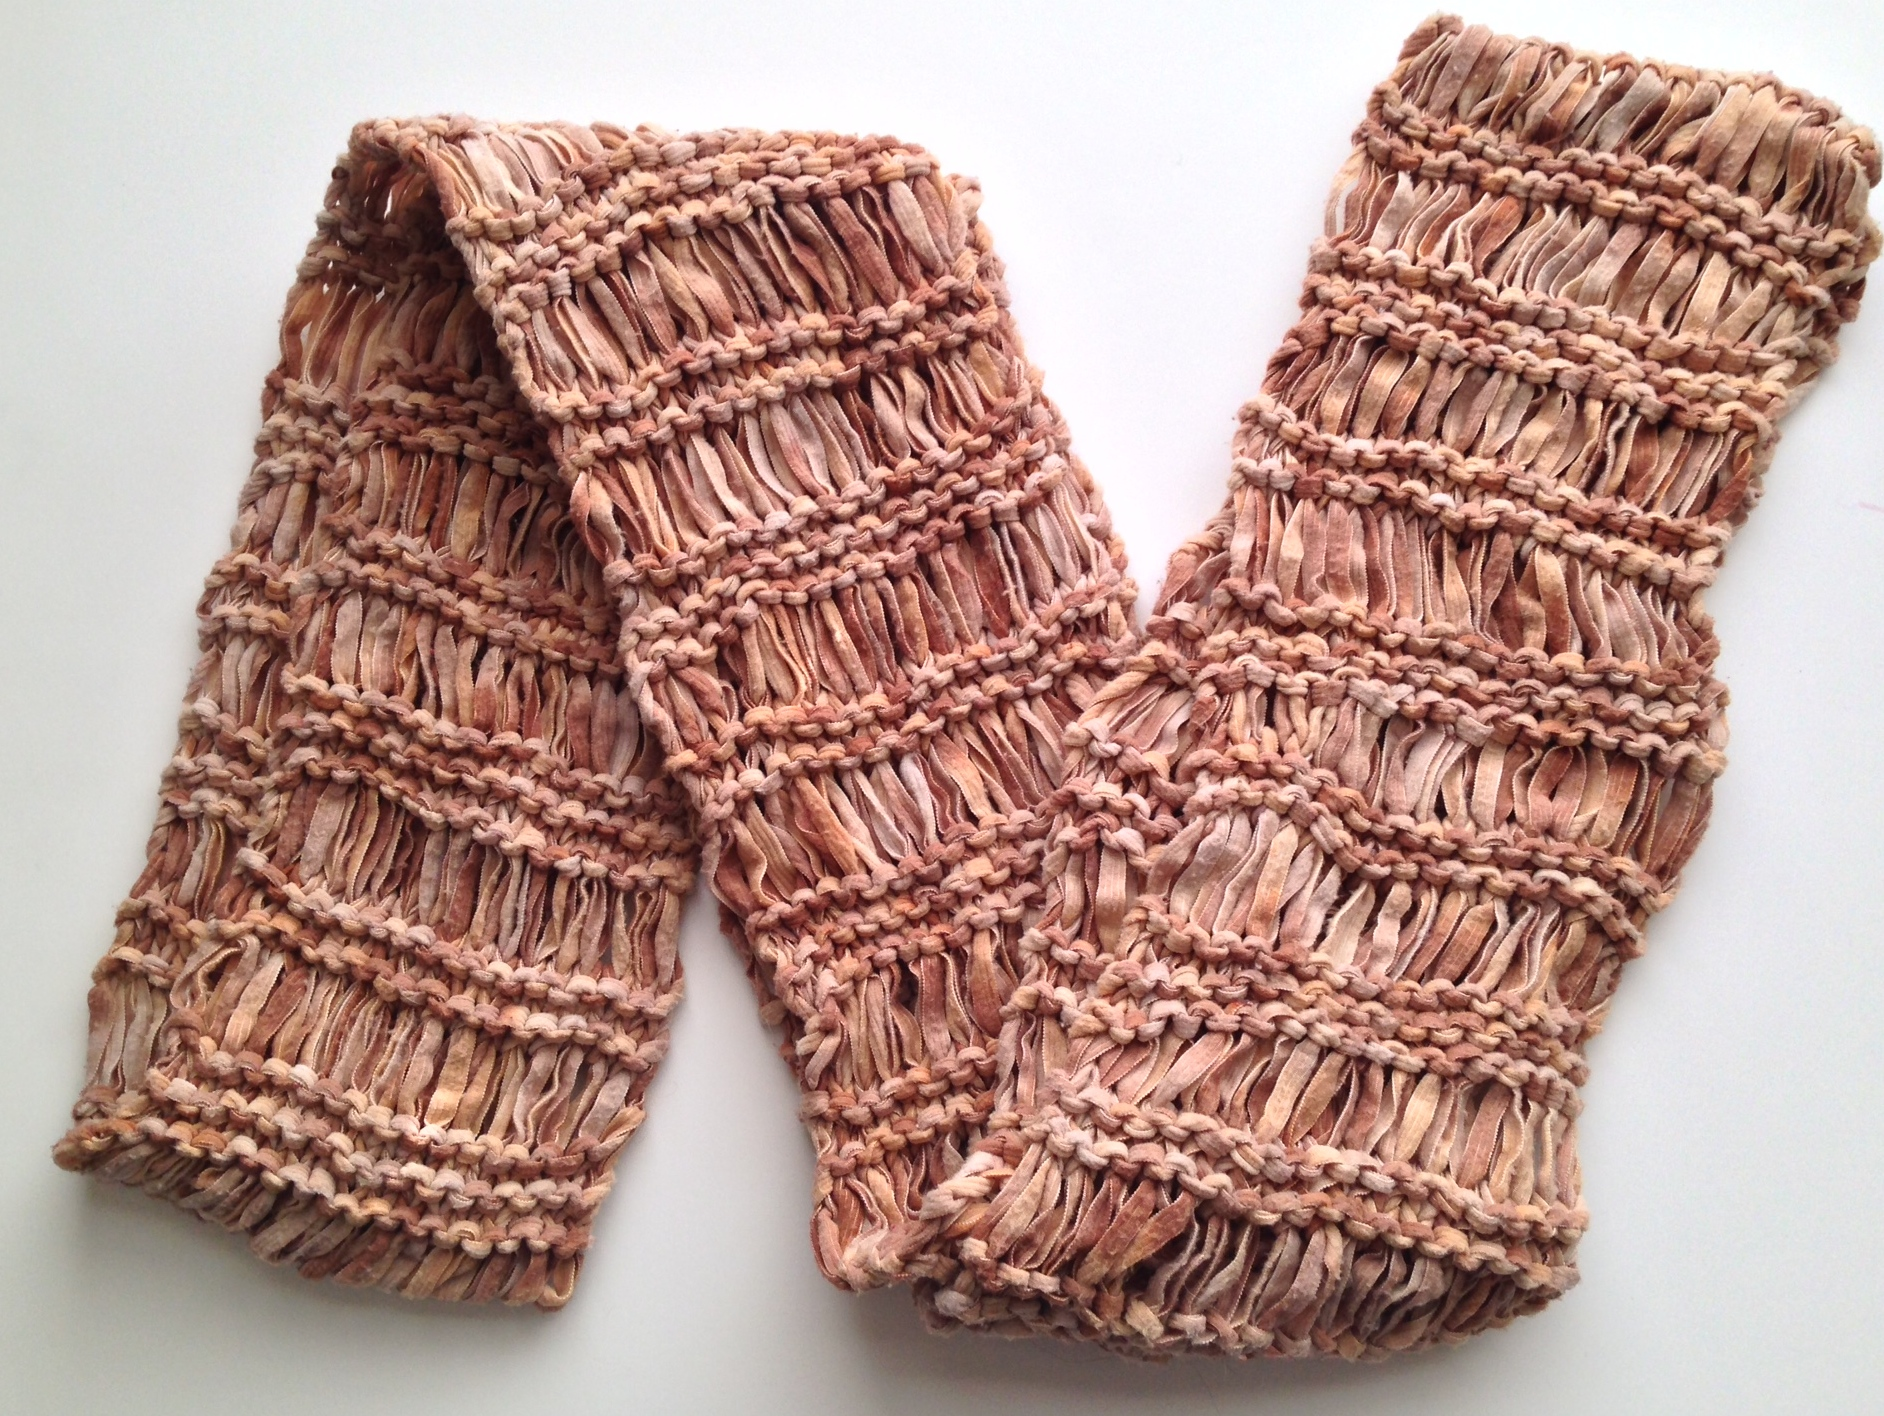 The free pattern for this (in dishcloth form) can be found in my Ravelry store  HERE.